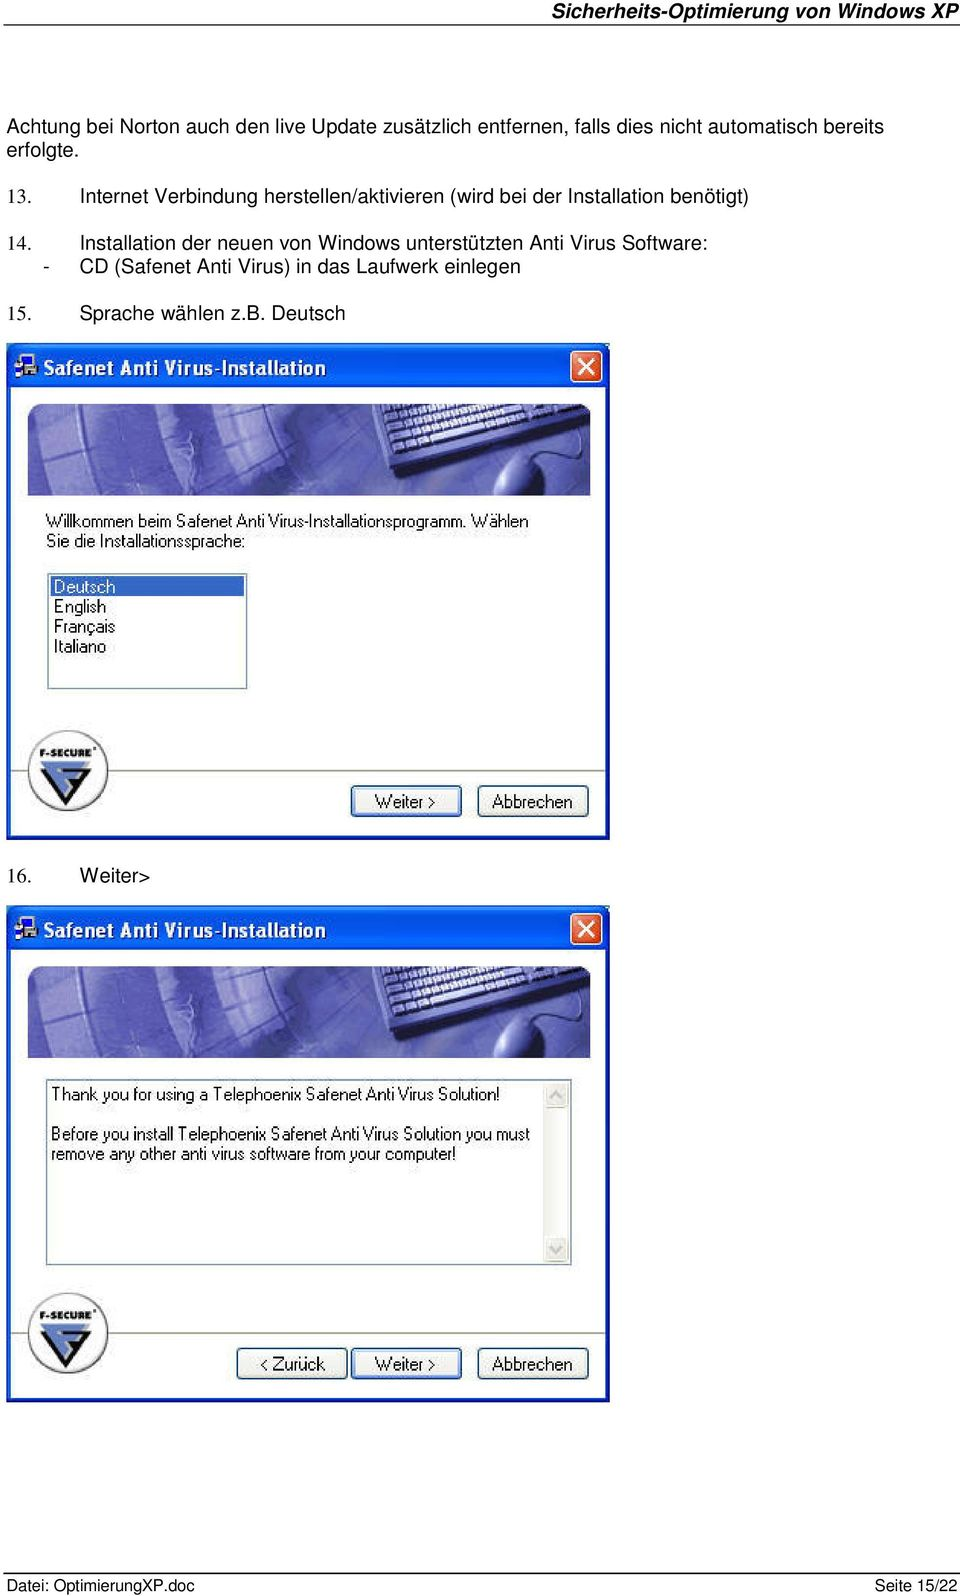 Installation der neuen von Windows unterstützten Anti Virus Software: - CD (Safenet Anti Virus) in